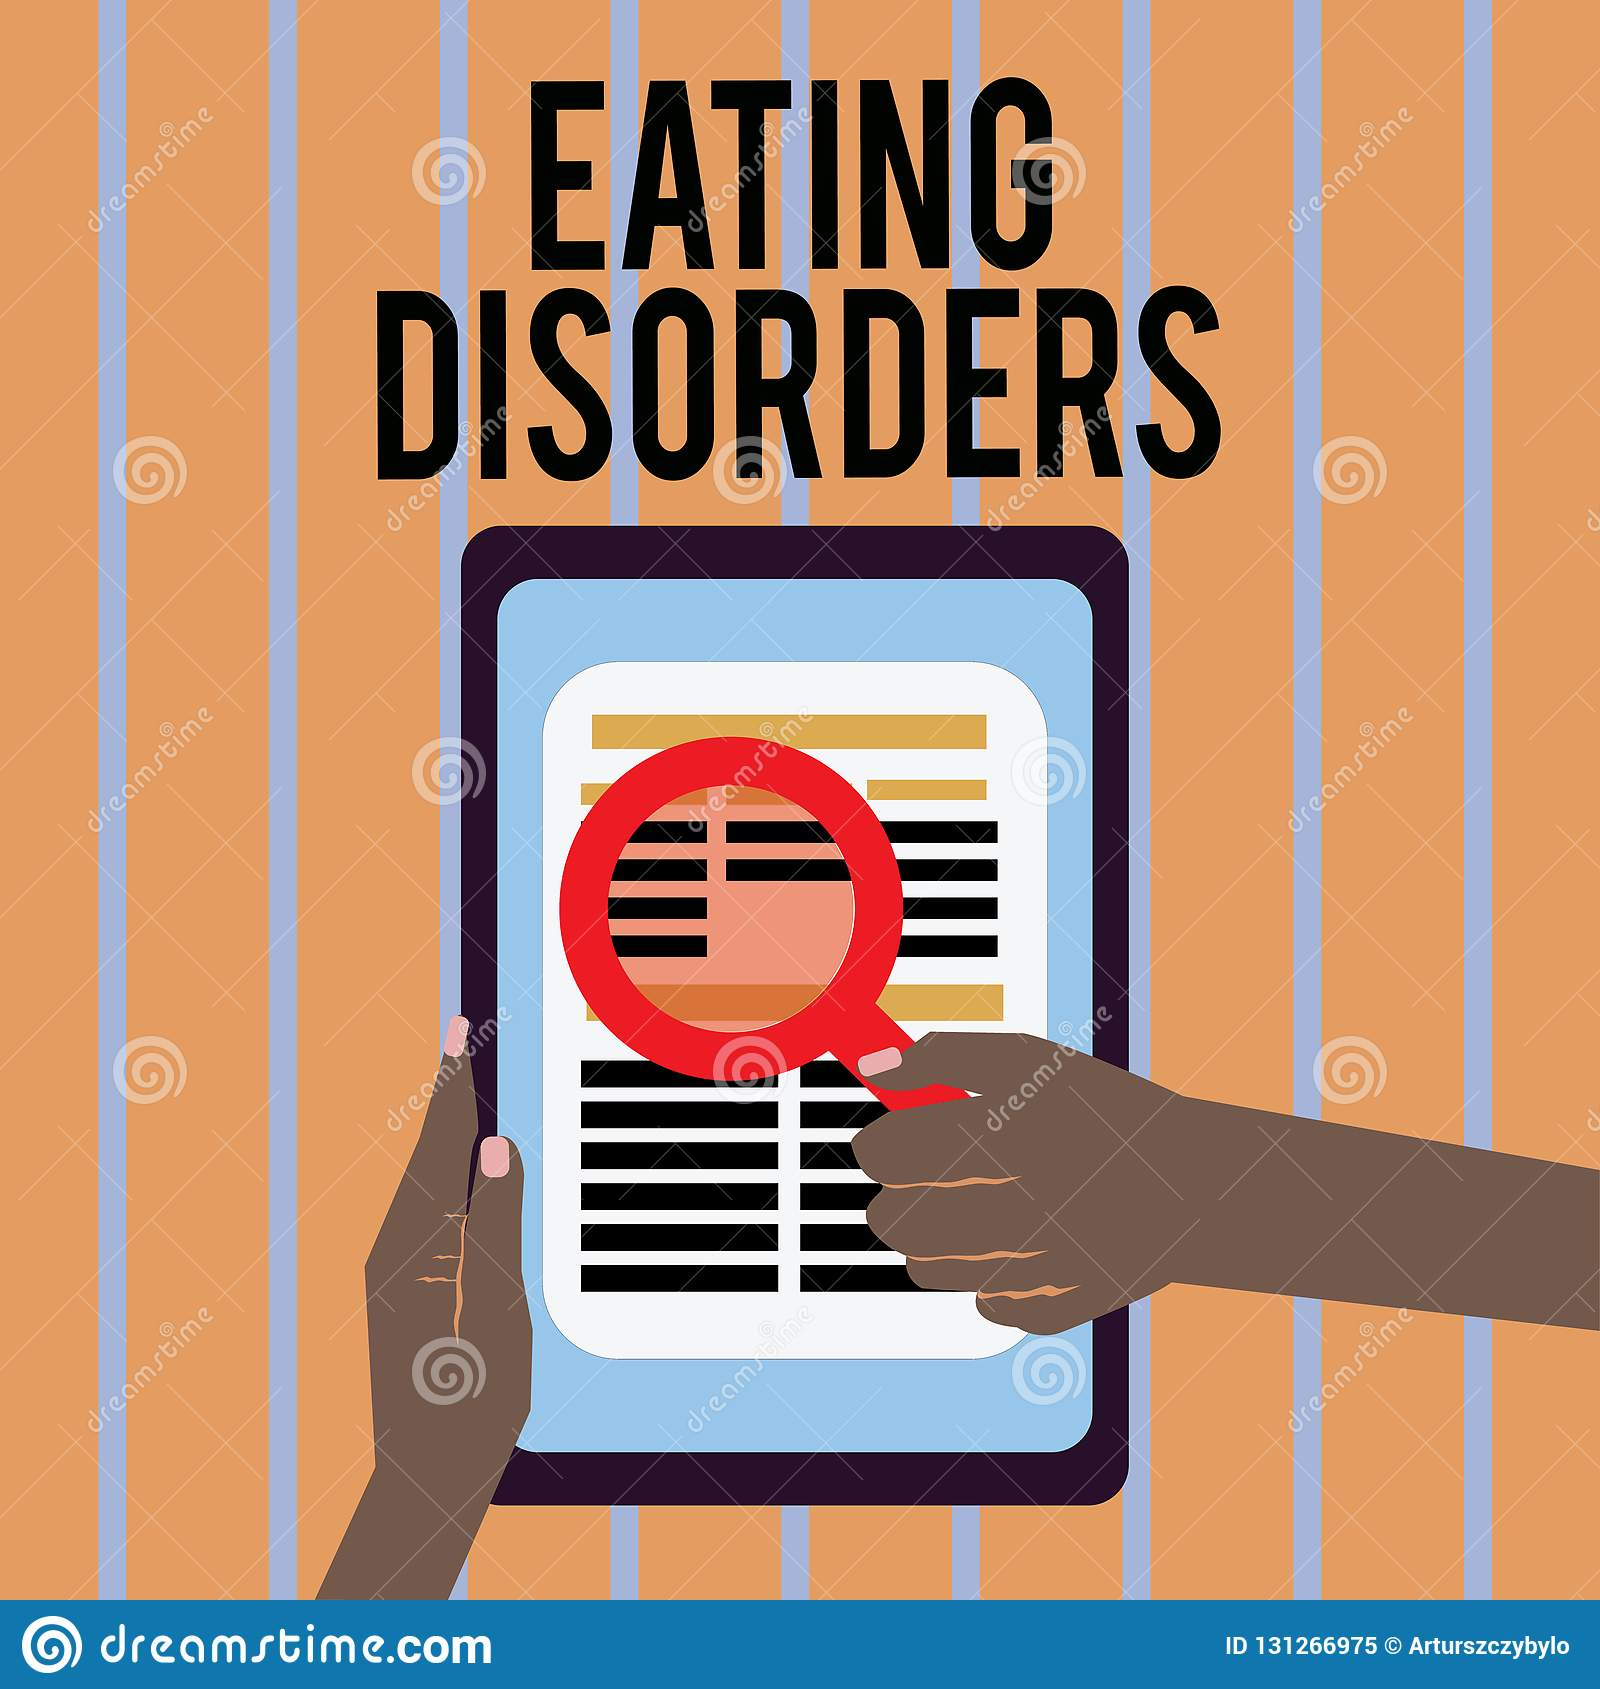 Extended essay eating disorders